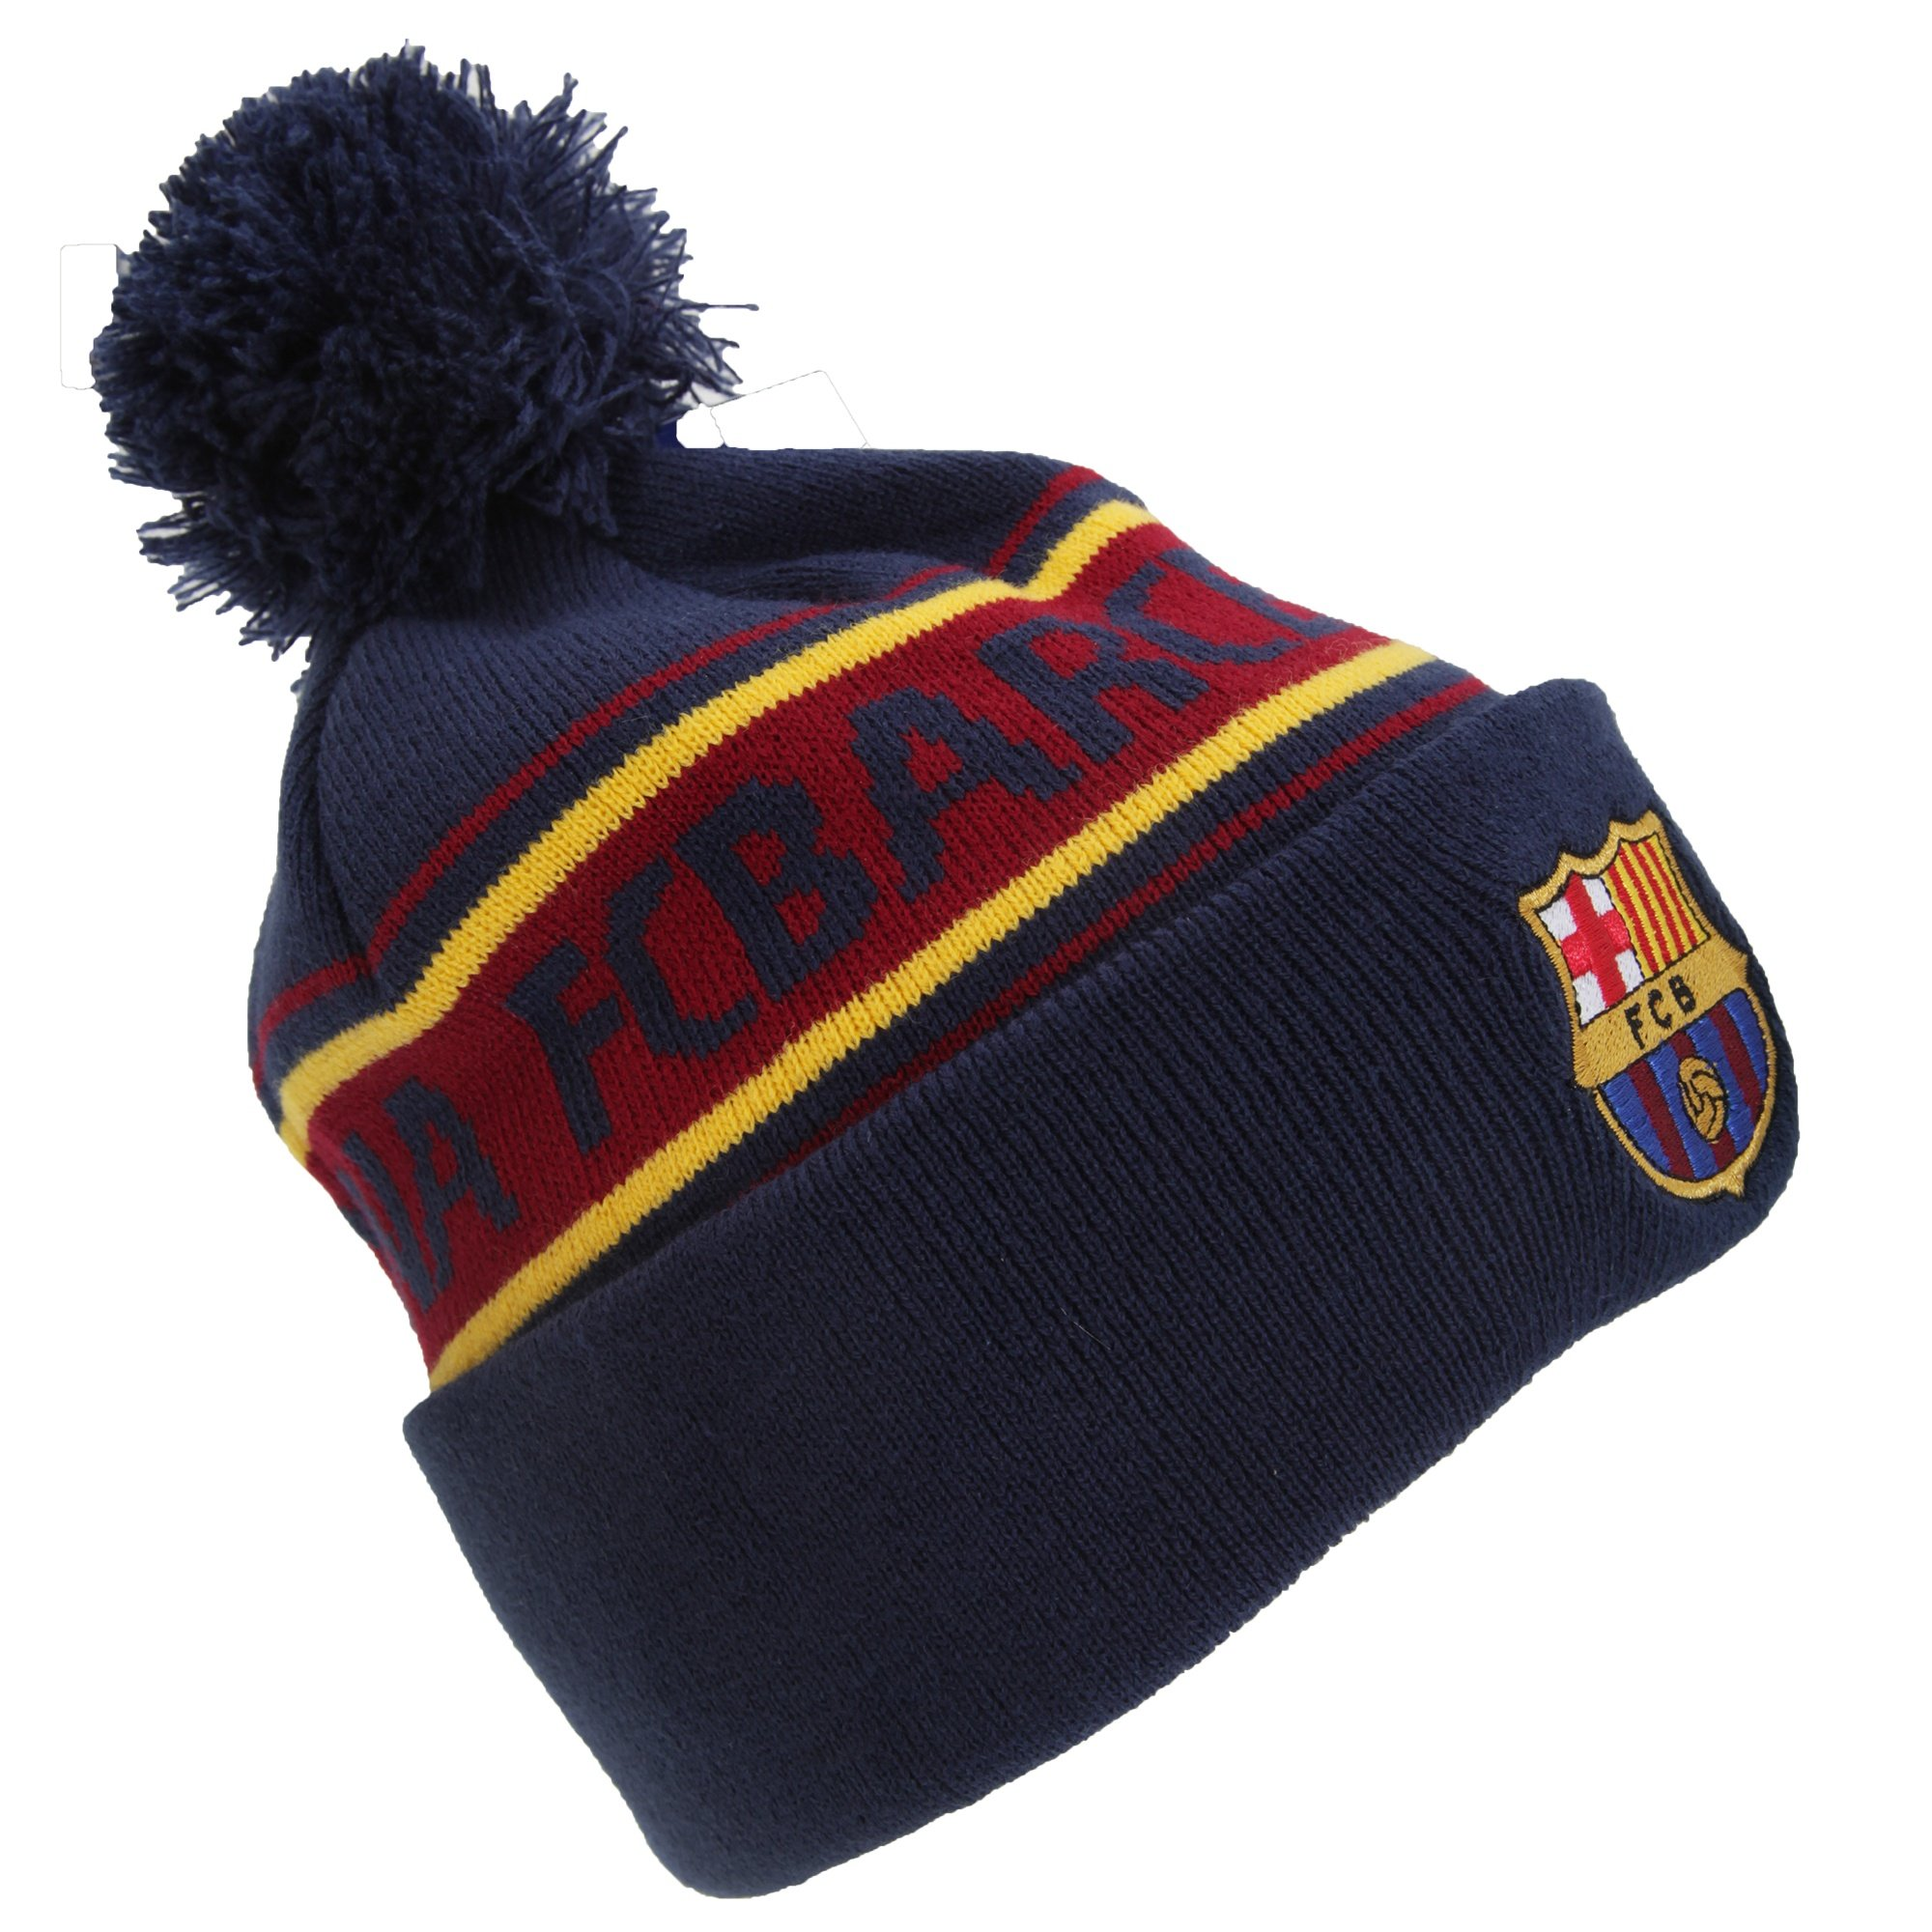 01f8eee8078 Get Quotations · FC Barcelona Official Text Winter Beanie Hat